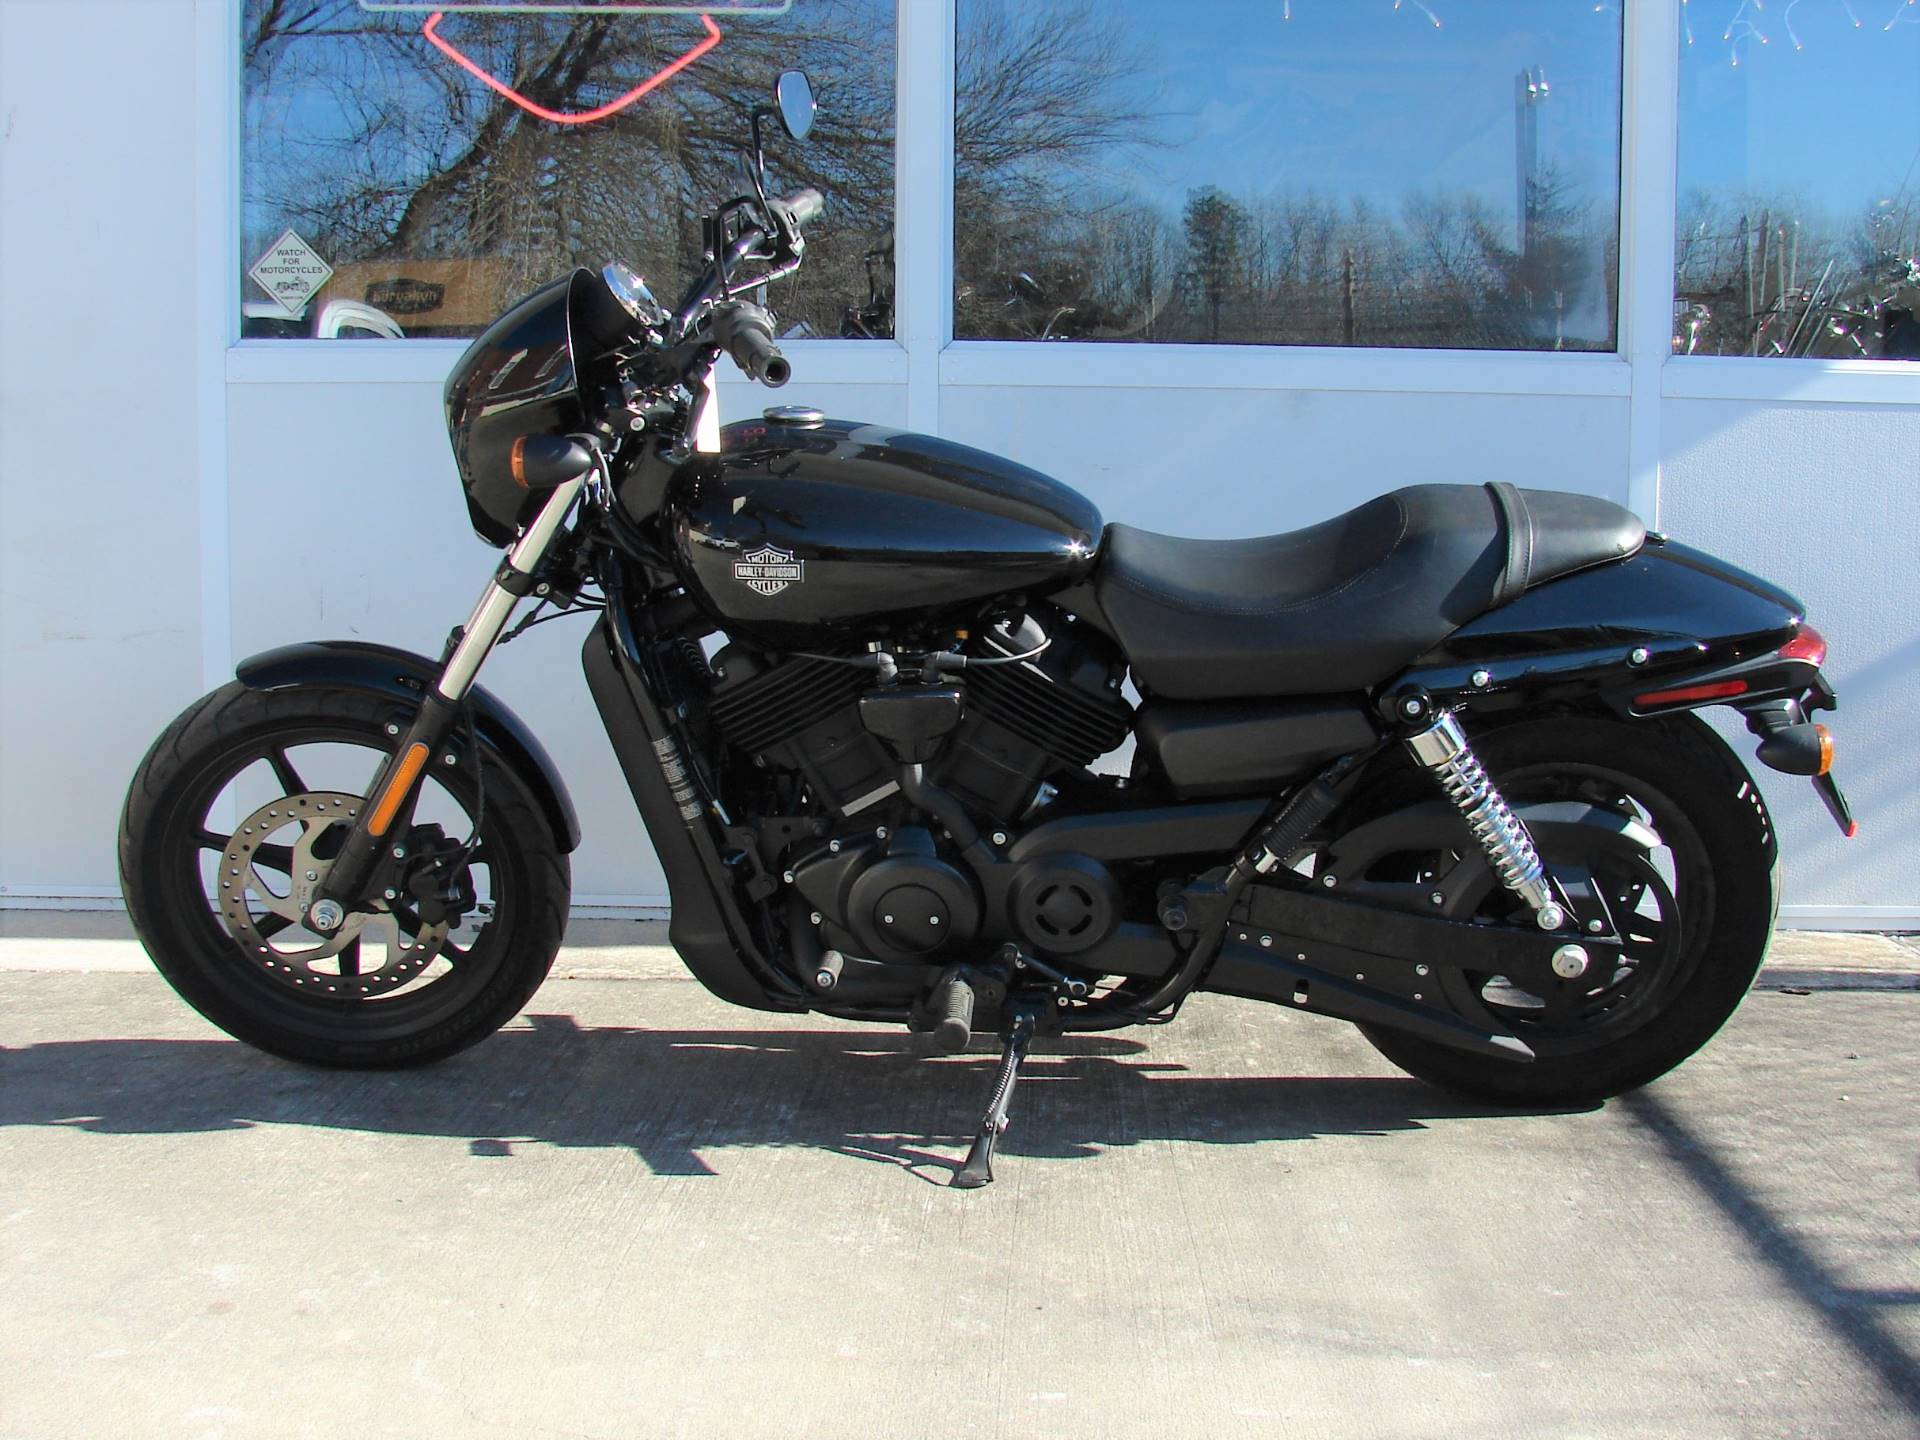 2017 Harley-Davidson XG500 Street Motorcycle in Williamstown, New Jersey - Photo 12